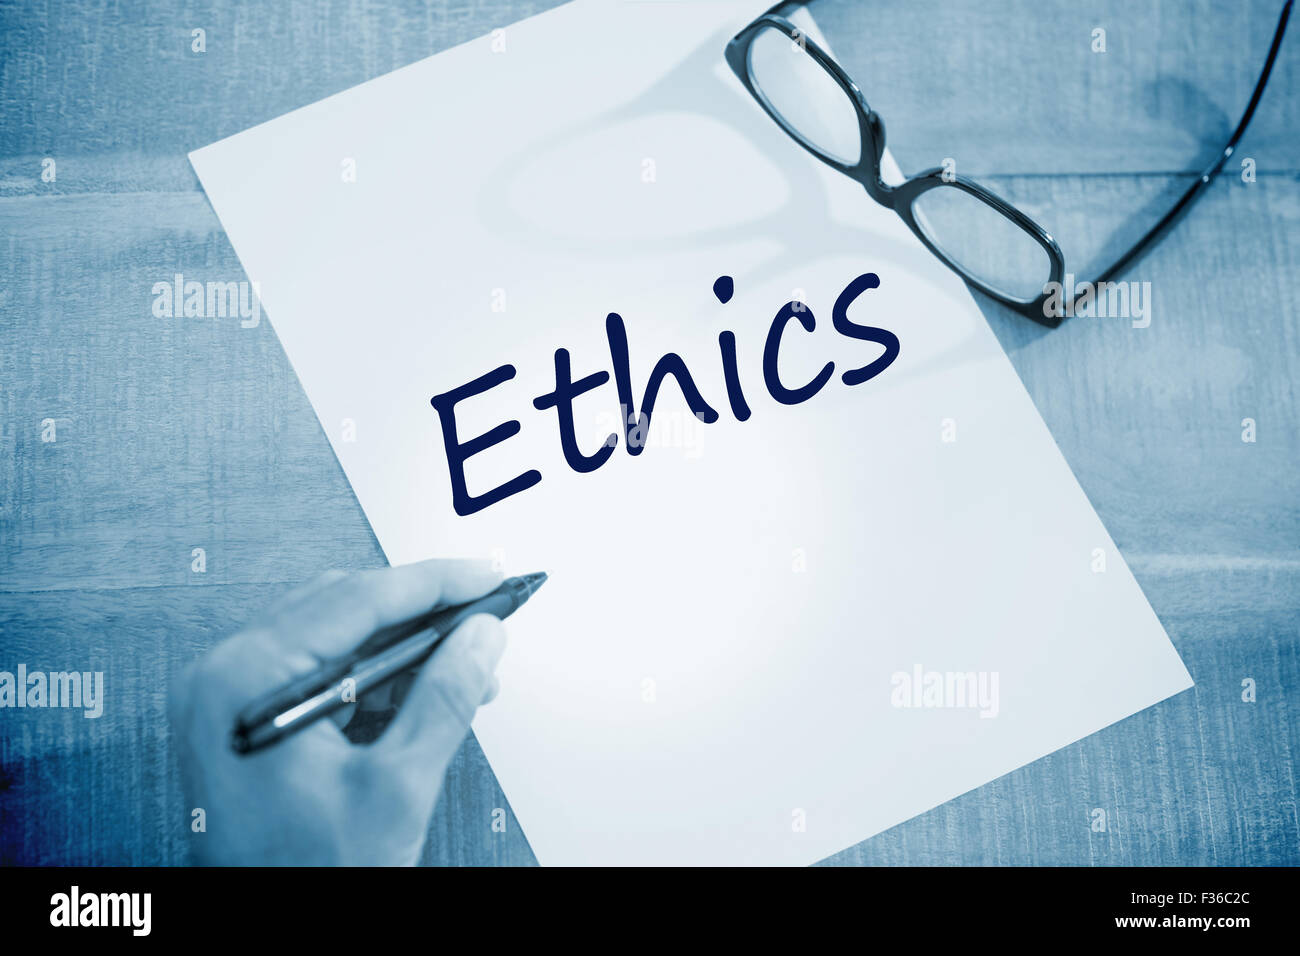 Ethics against left hand writing on white page on working desk - Stock Image